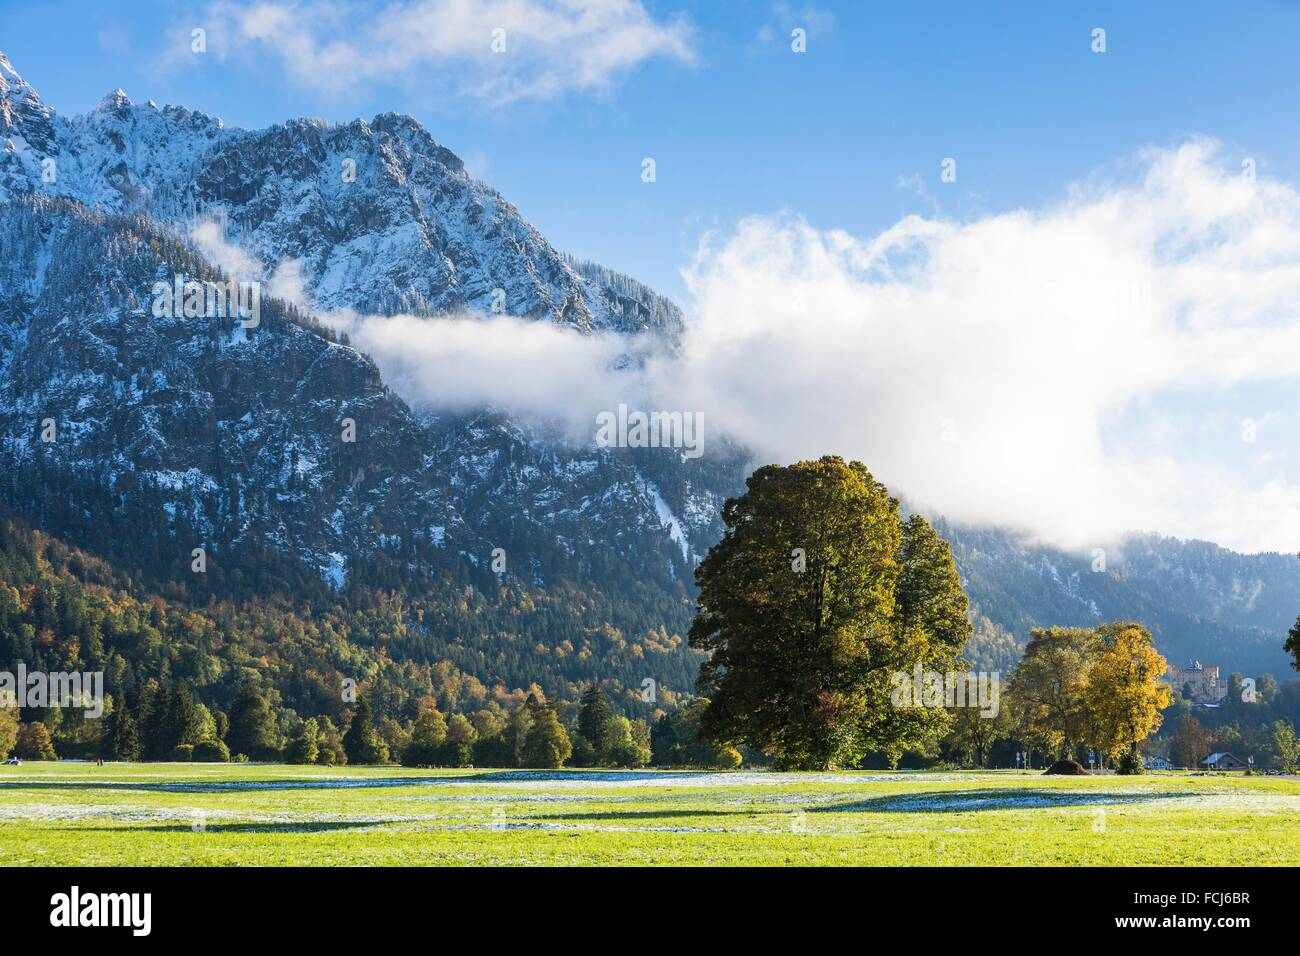 Wintery landscape in Bavaria, Germany, Europe - Stock Image